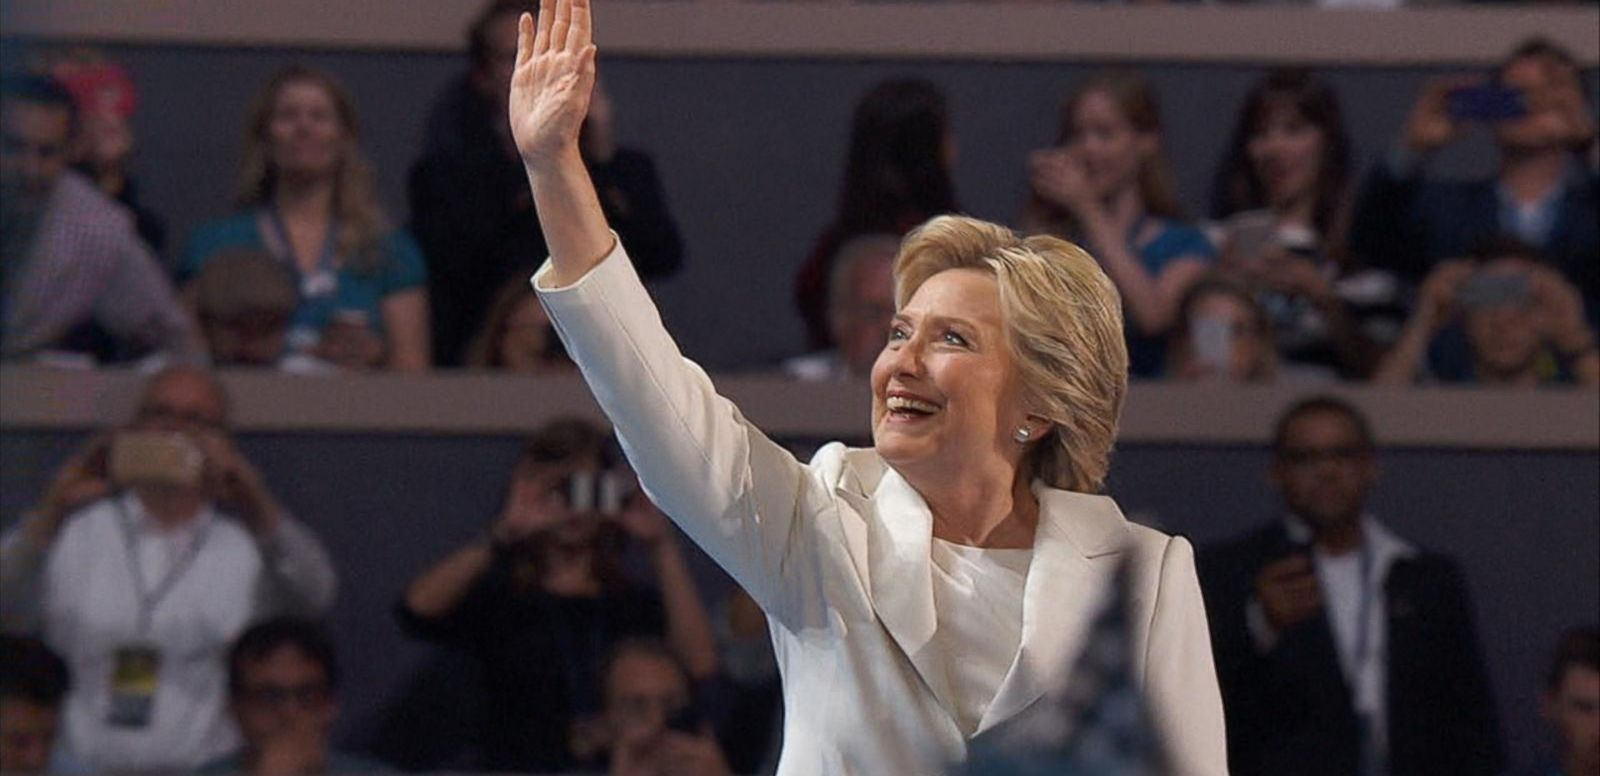 VIDEO: Hillary Clinton Accepts Democratic Presidential Nomination